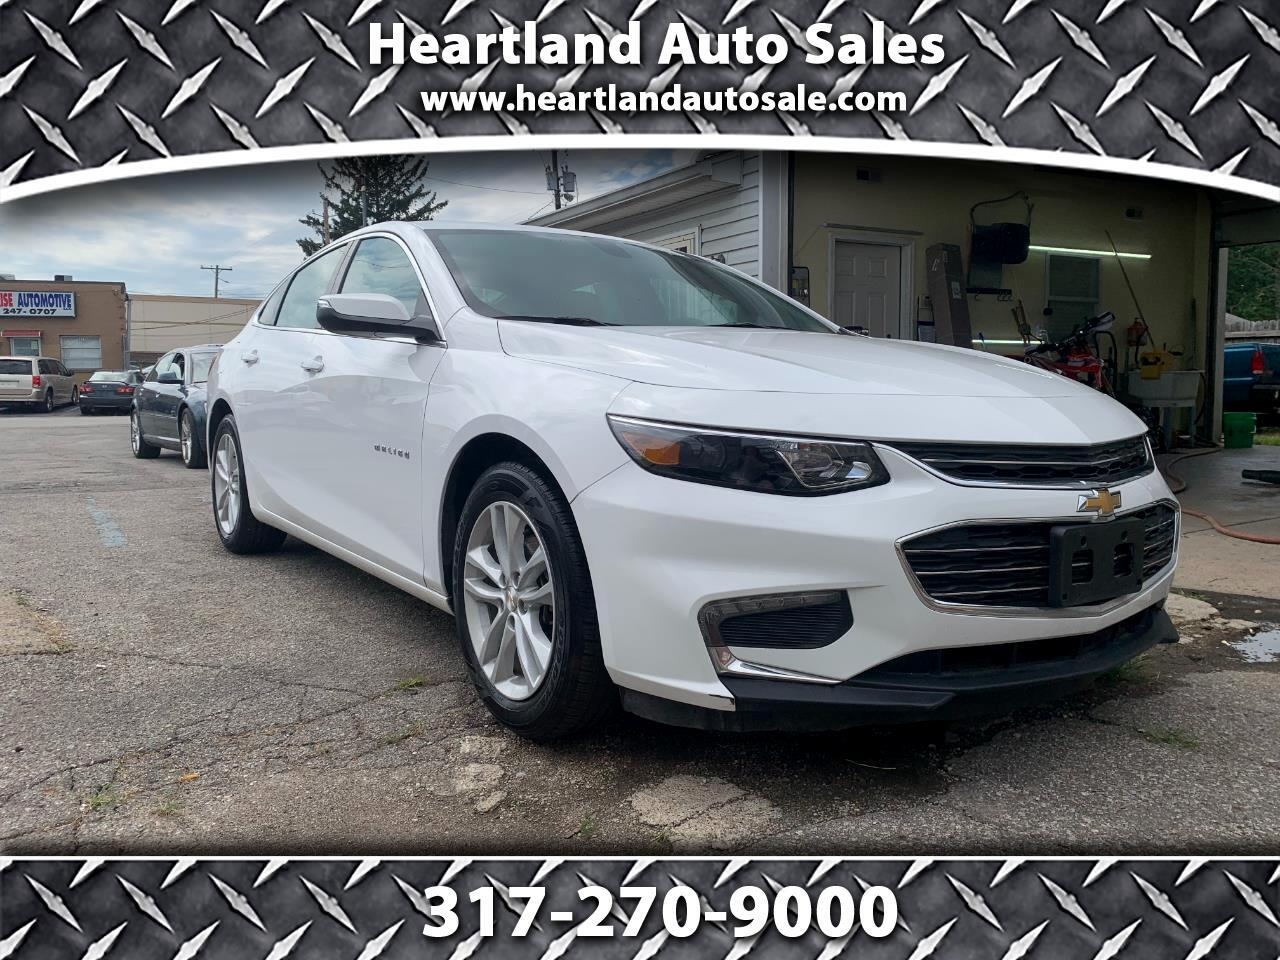 used cars indianapolis in used cars trucks in heartland auto sales heartland auto sales